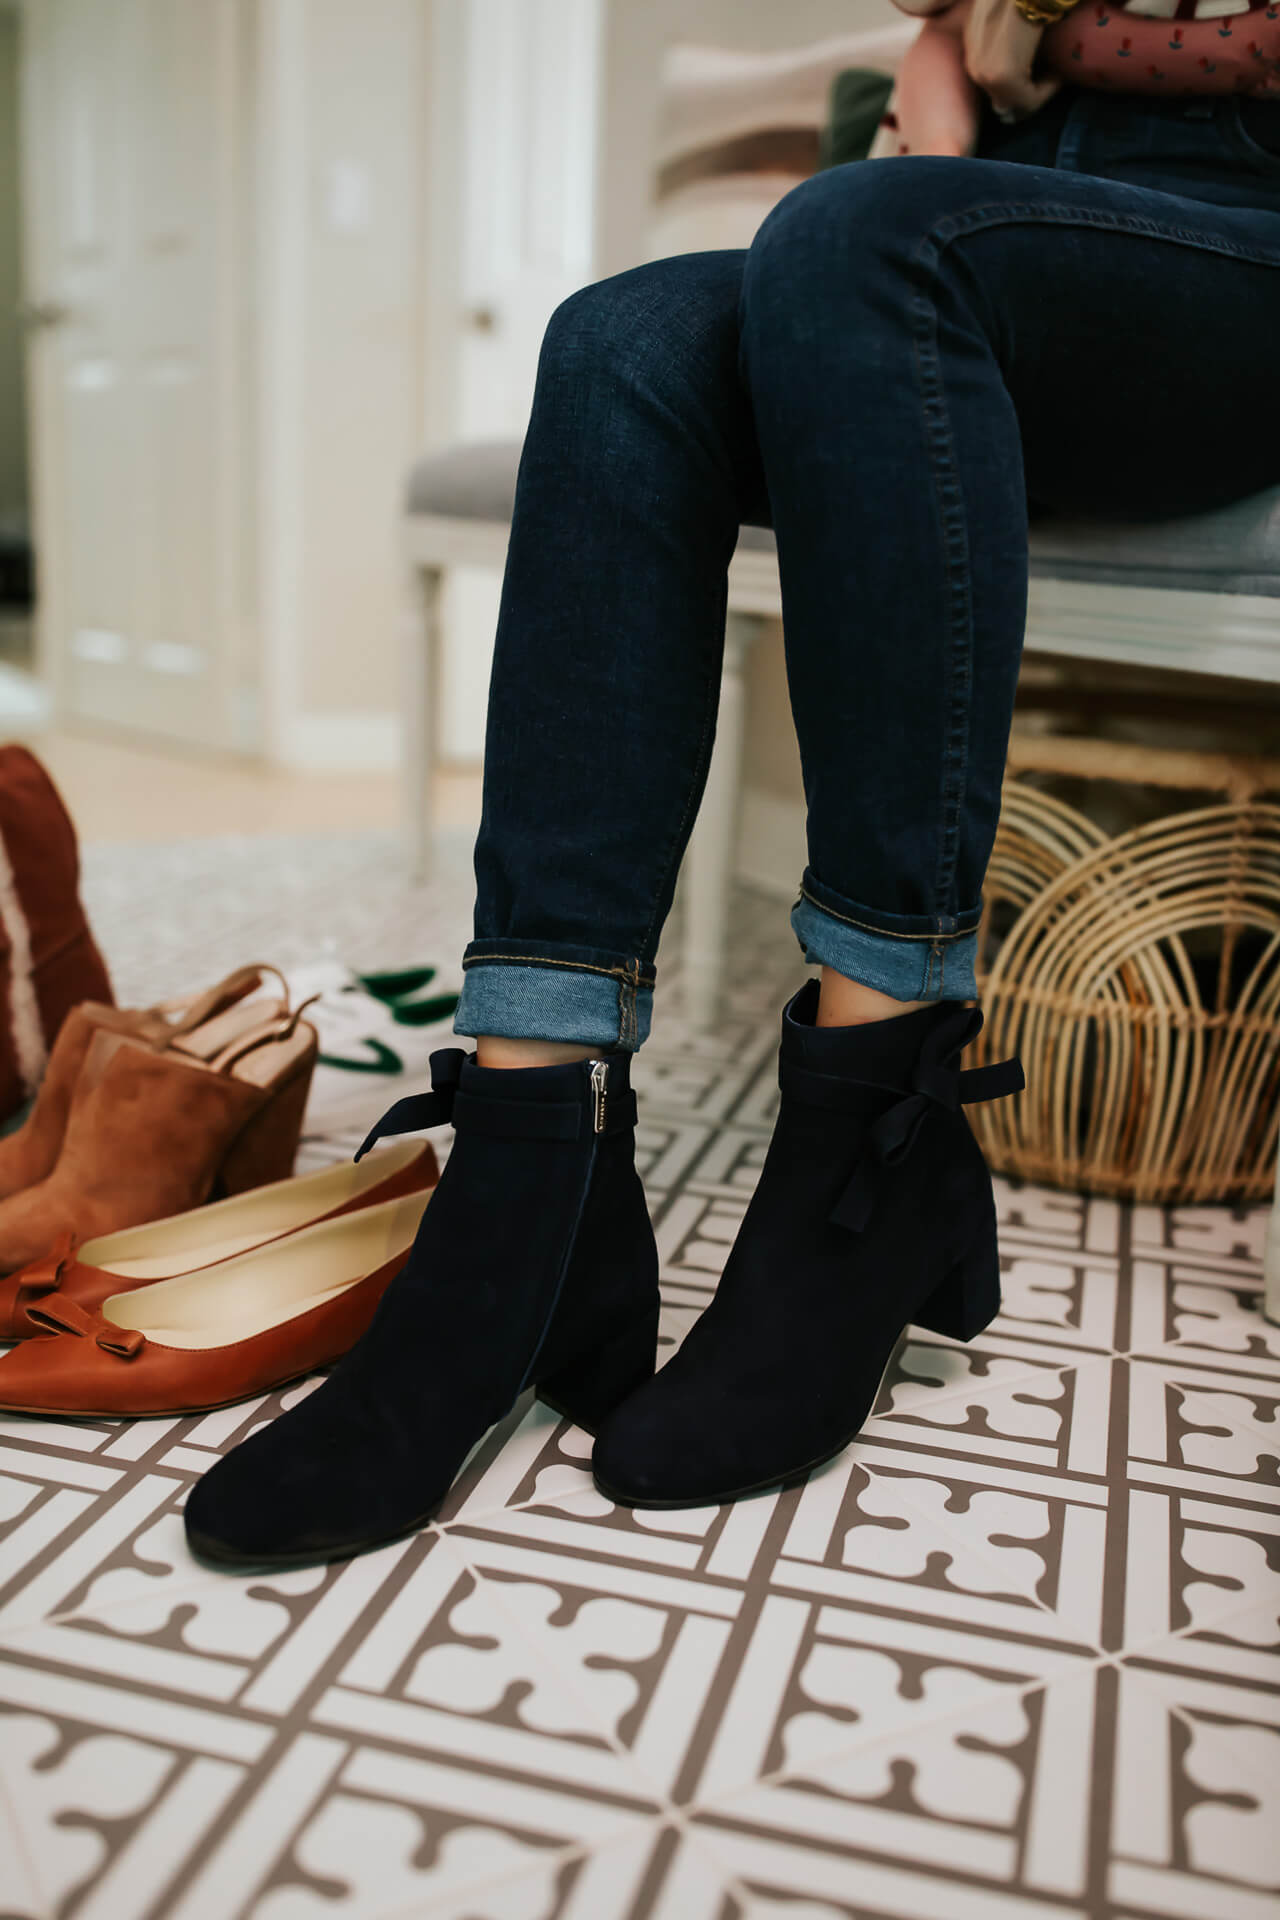 Cute Gal Meets Glam ankle boots! - M Loves M @marmar